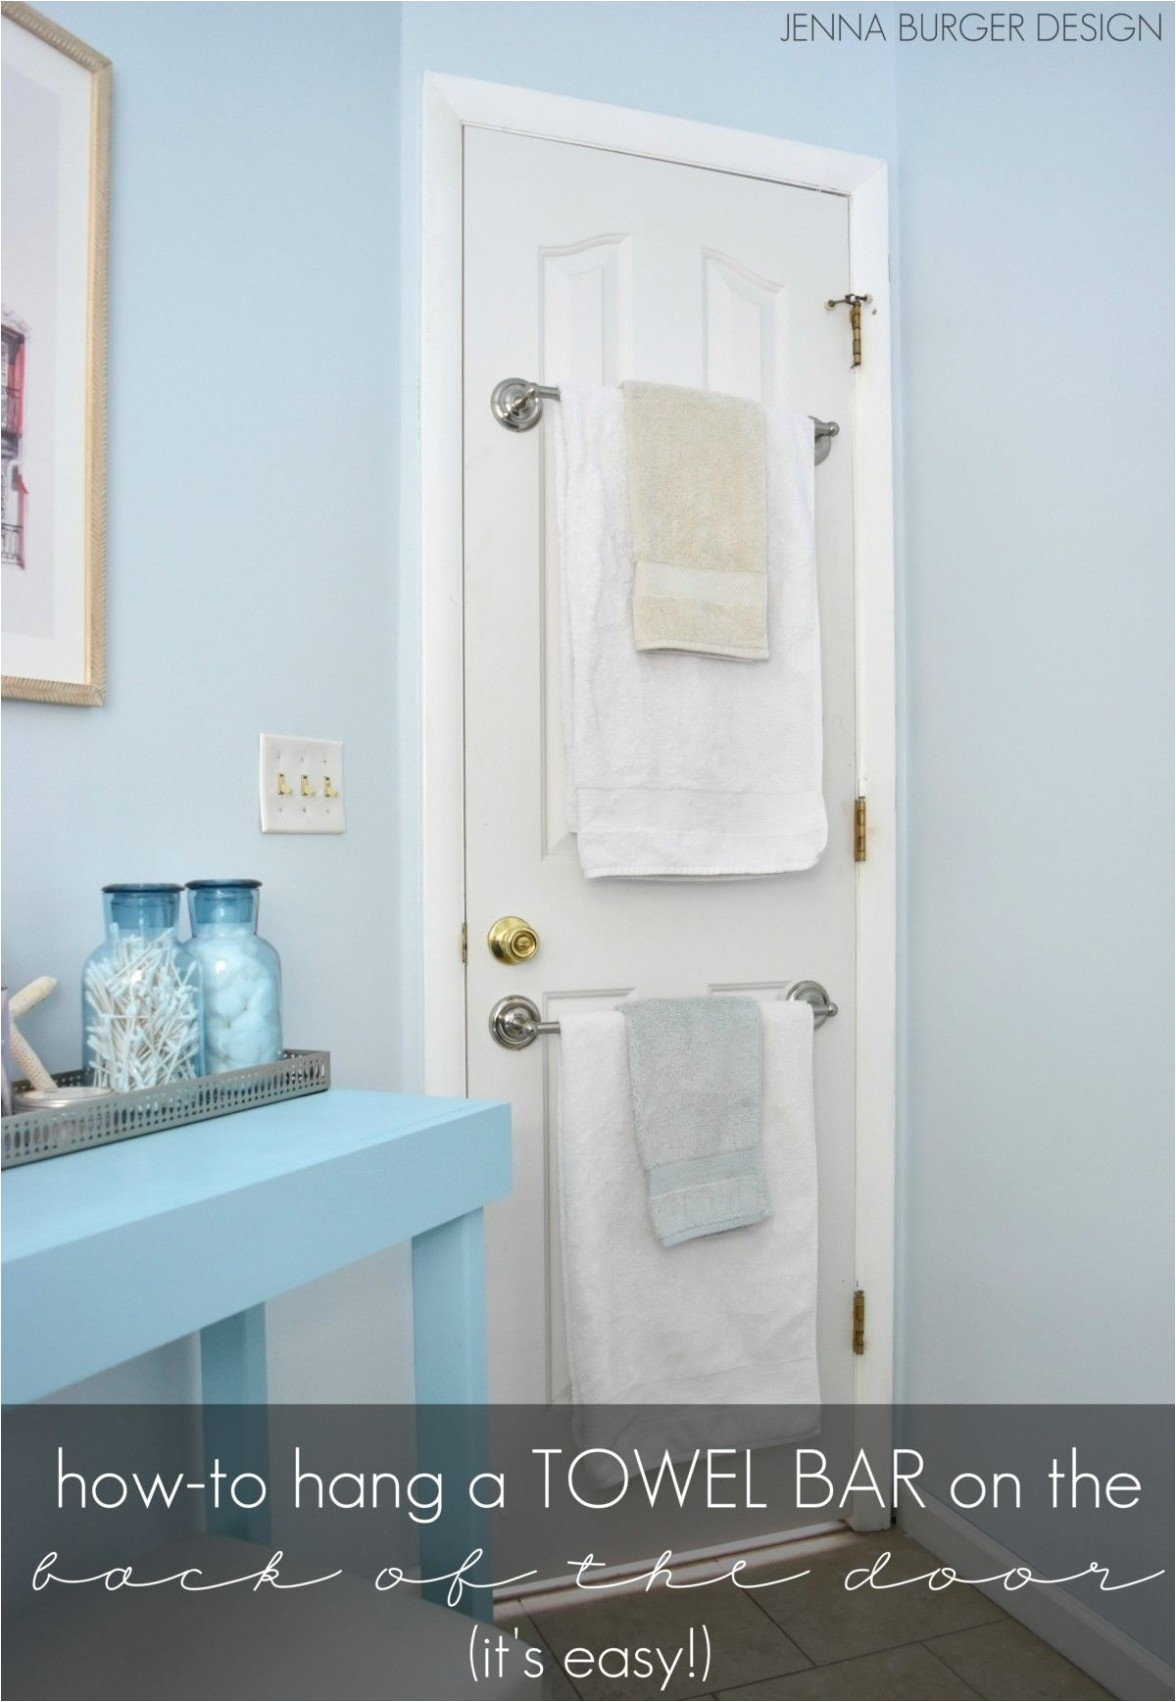 Bathroom towel Designs 14t New Beautiful Bathroom Picture Ideas Lovely Tag toilet Ideas 0d Best